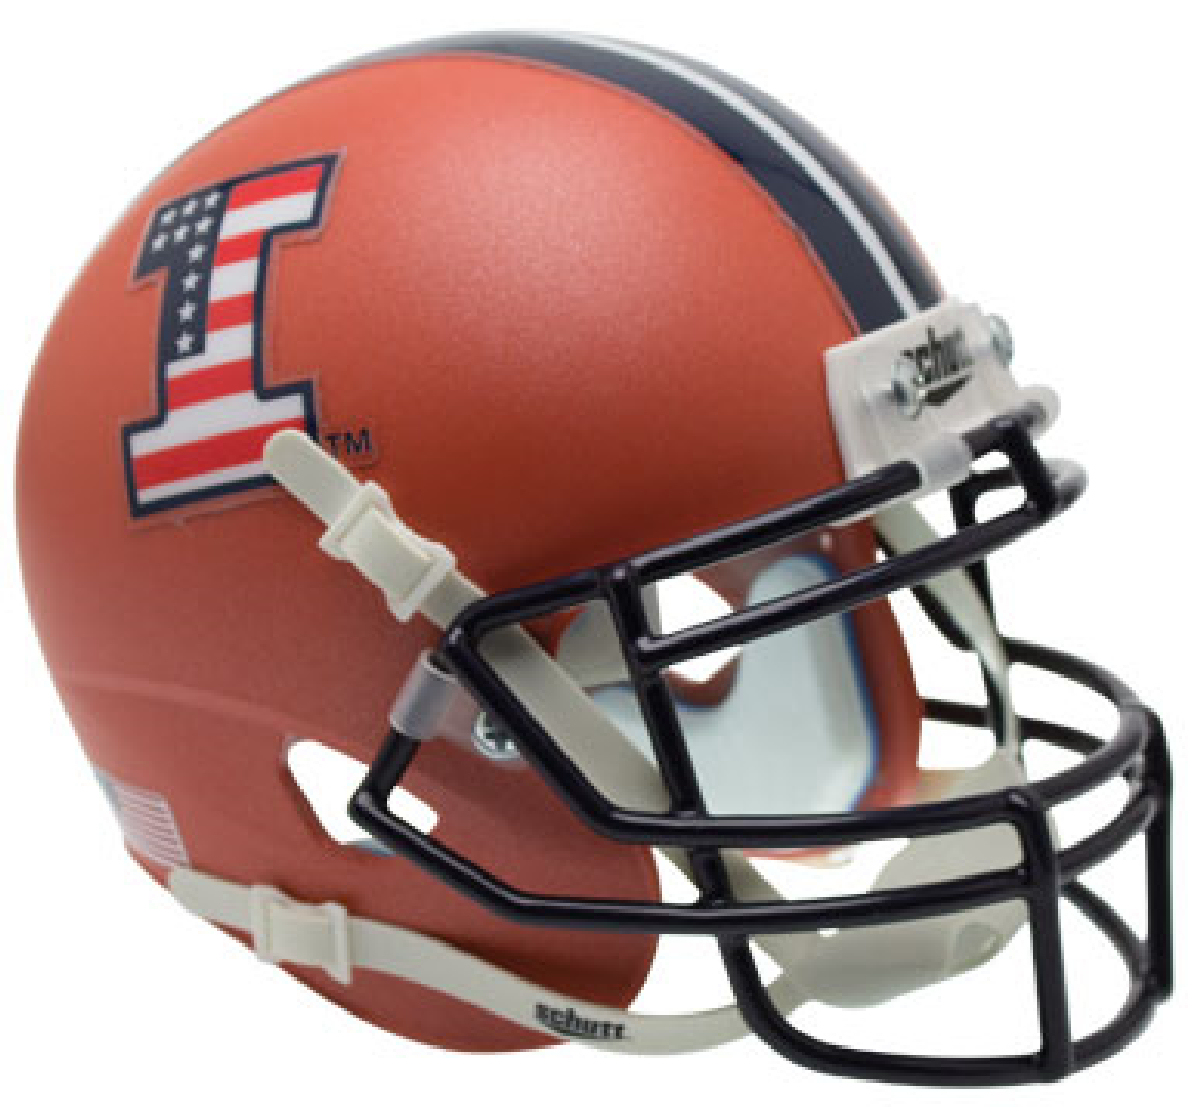 Illinois Fighting Illini Miniature Football Helmet Desk Caddy <B>Matte Orange Flag Decal</B>